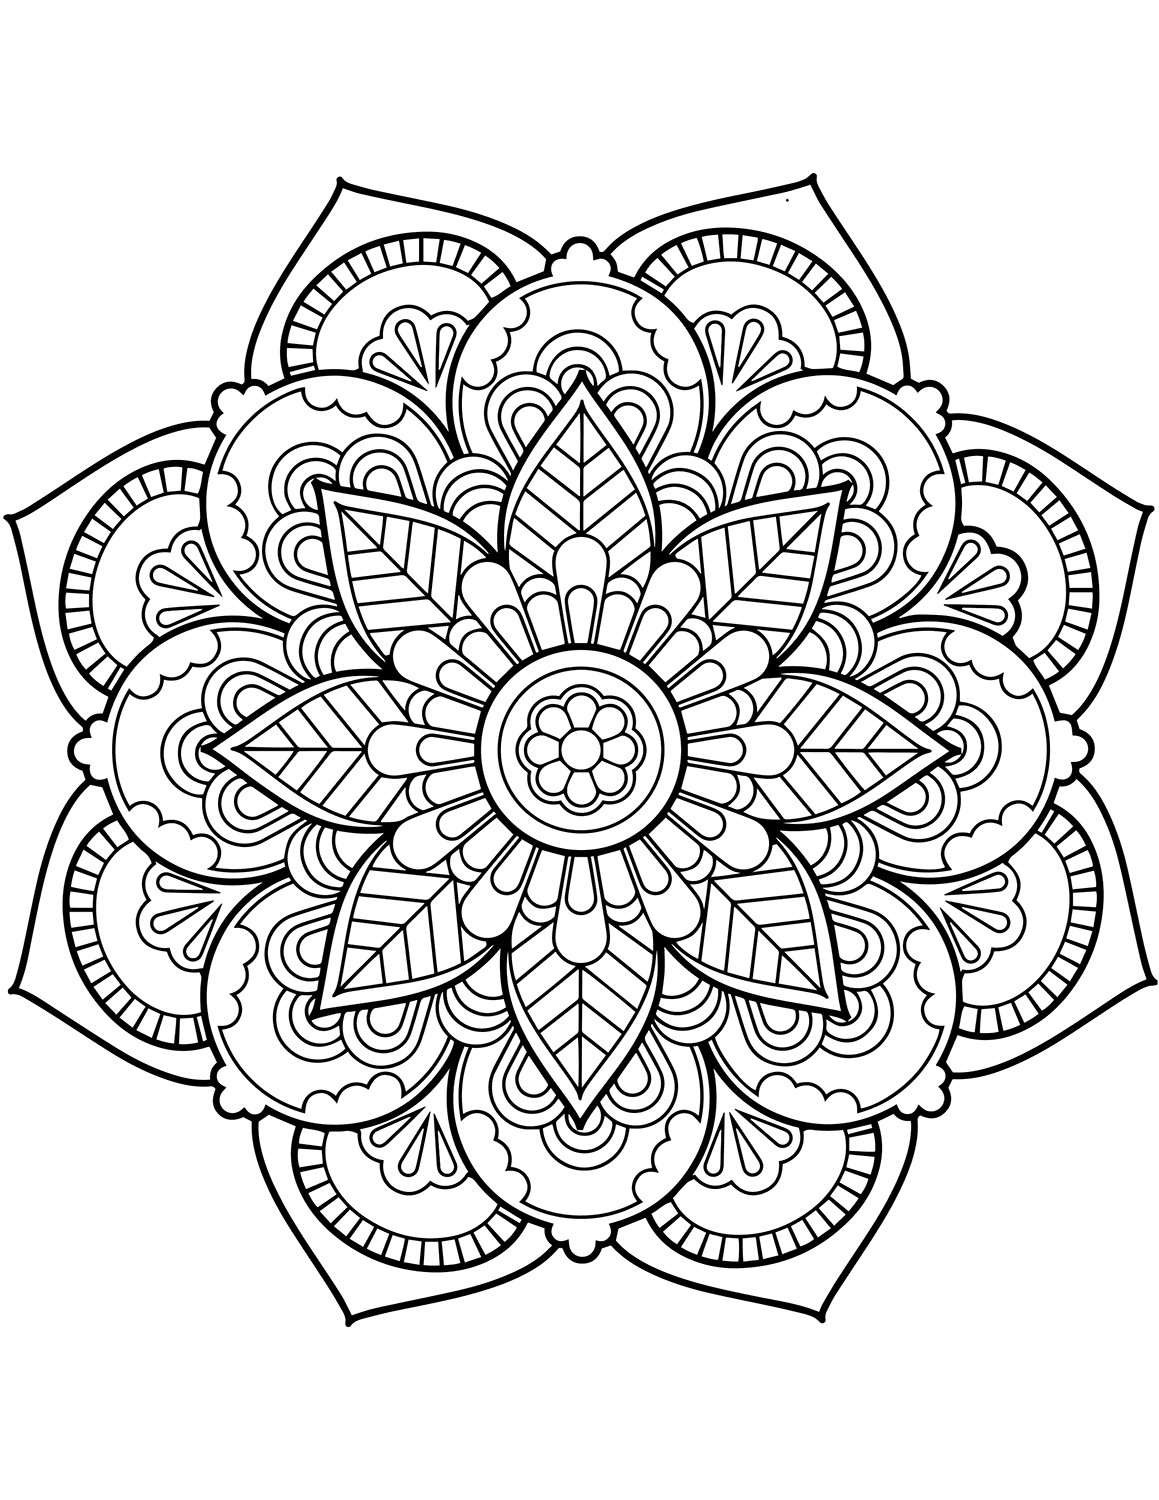 Flower Mandala Coloring Pages